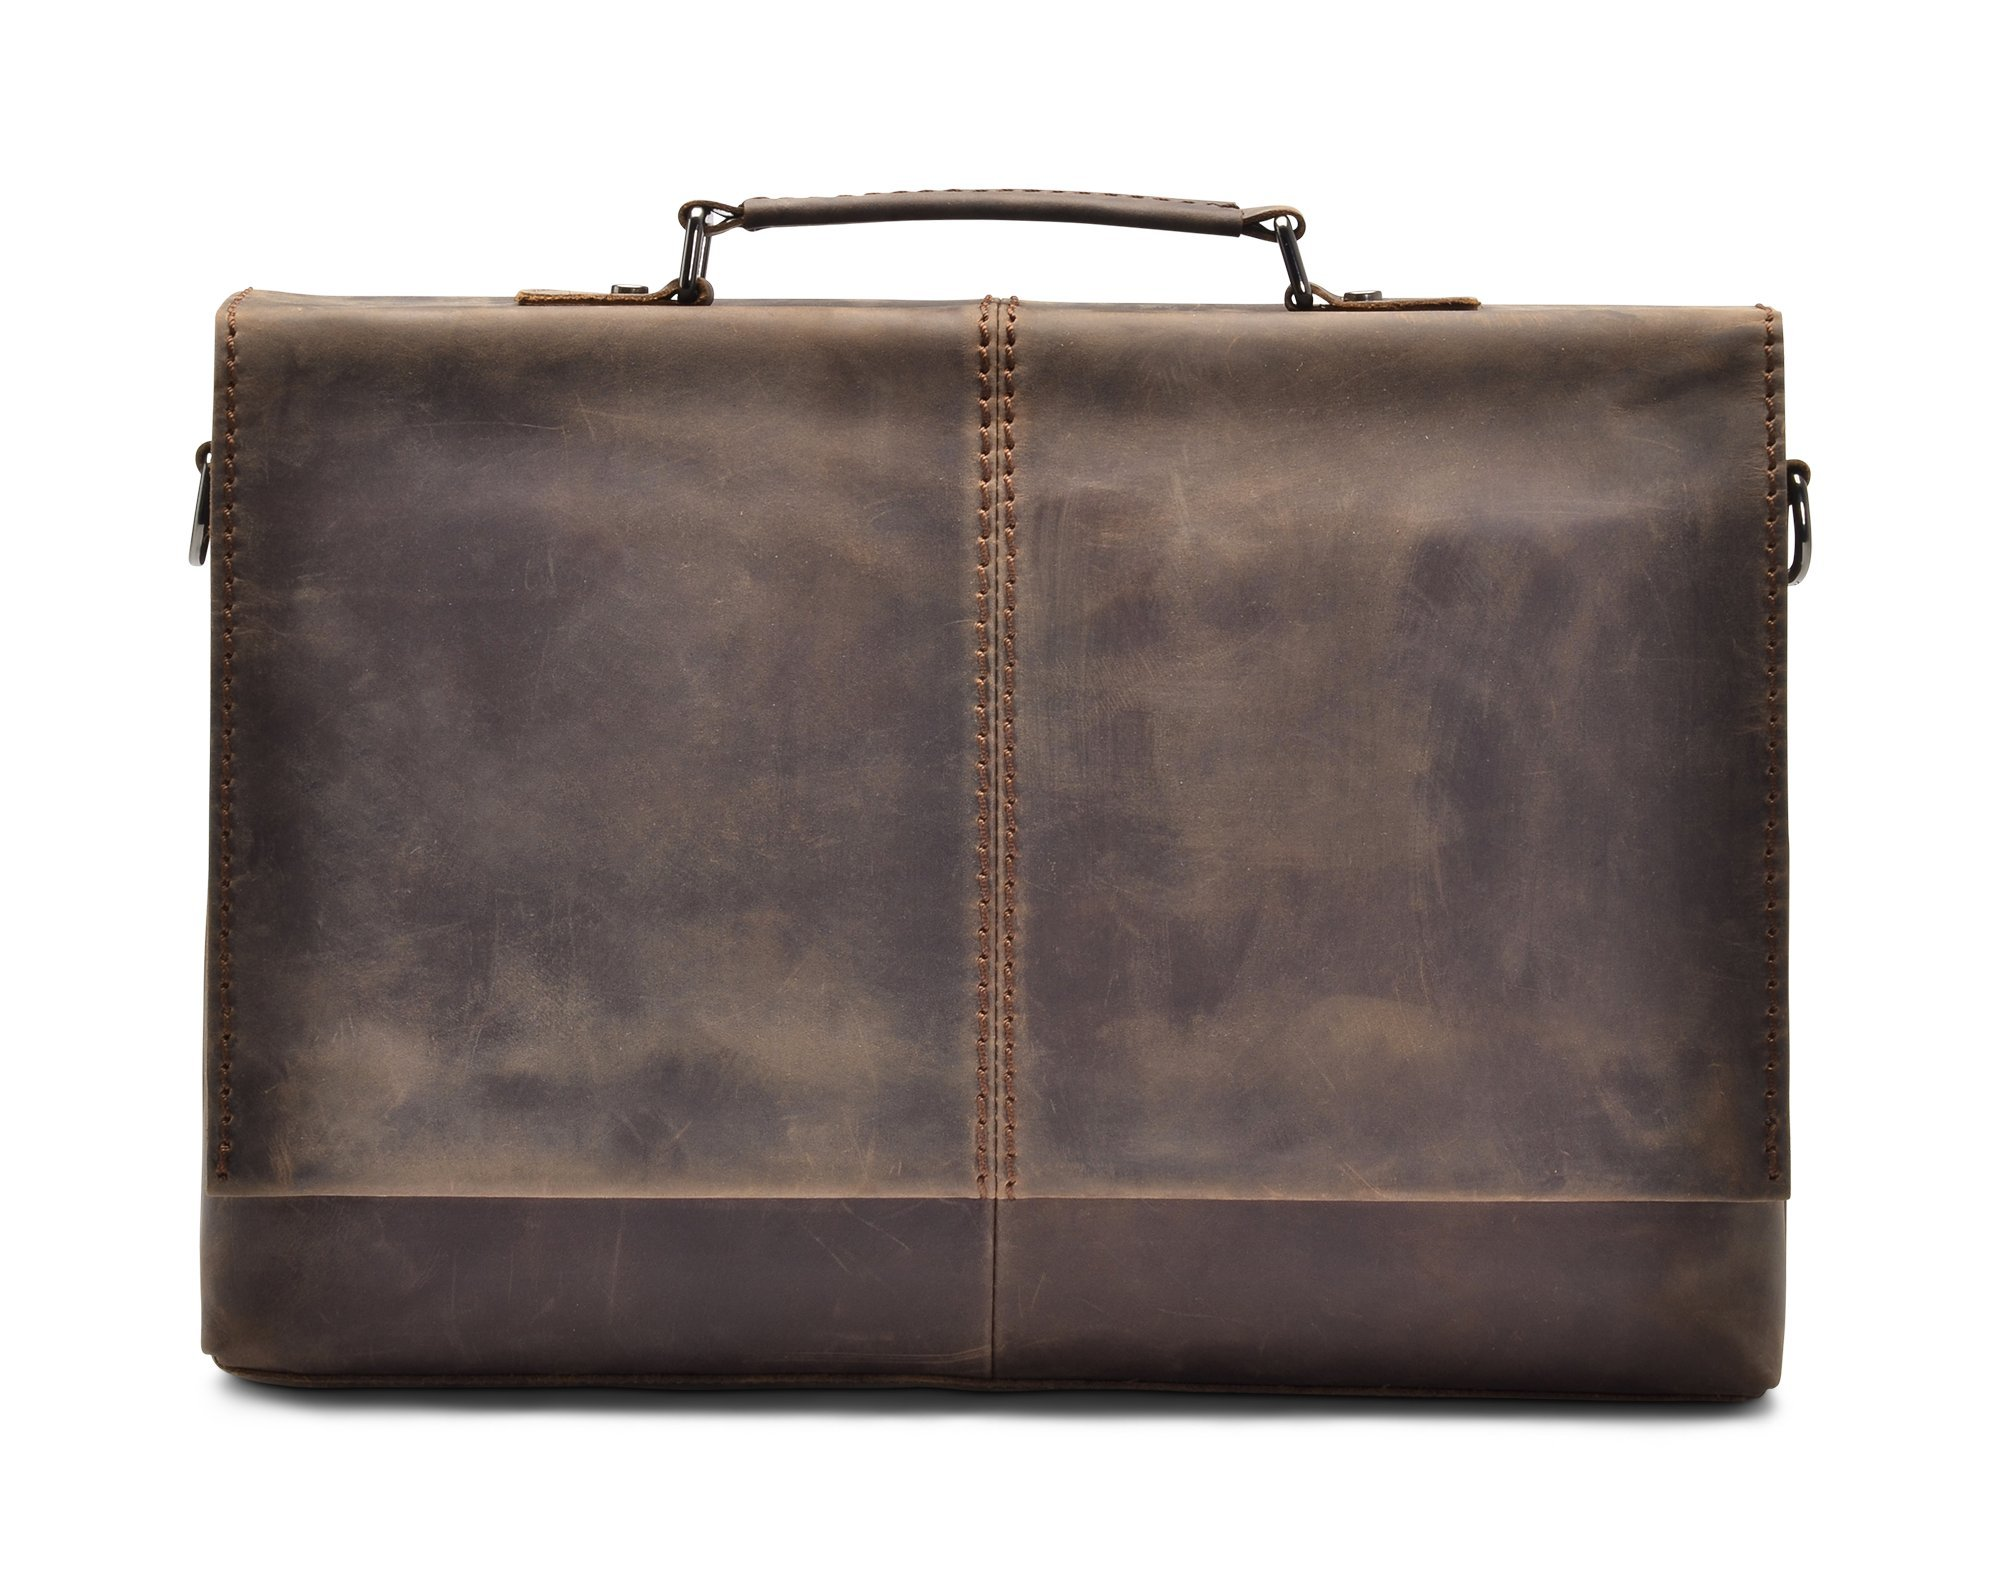 "Hølssen Briefcase Messenger 13"" Laptop Genuine Leather Bag"